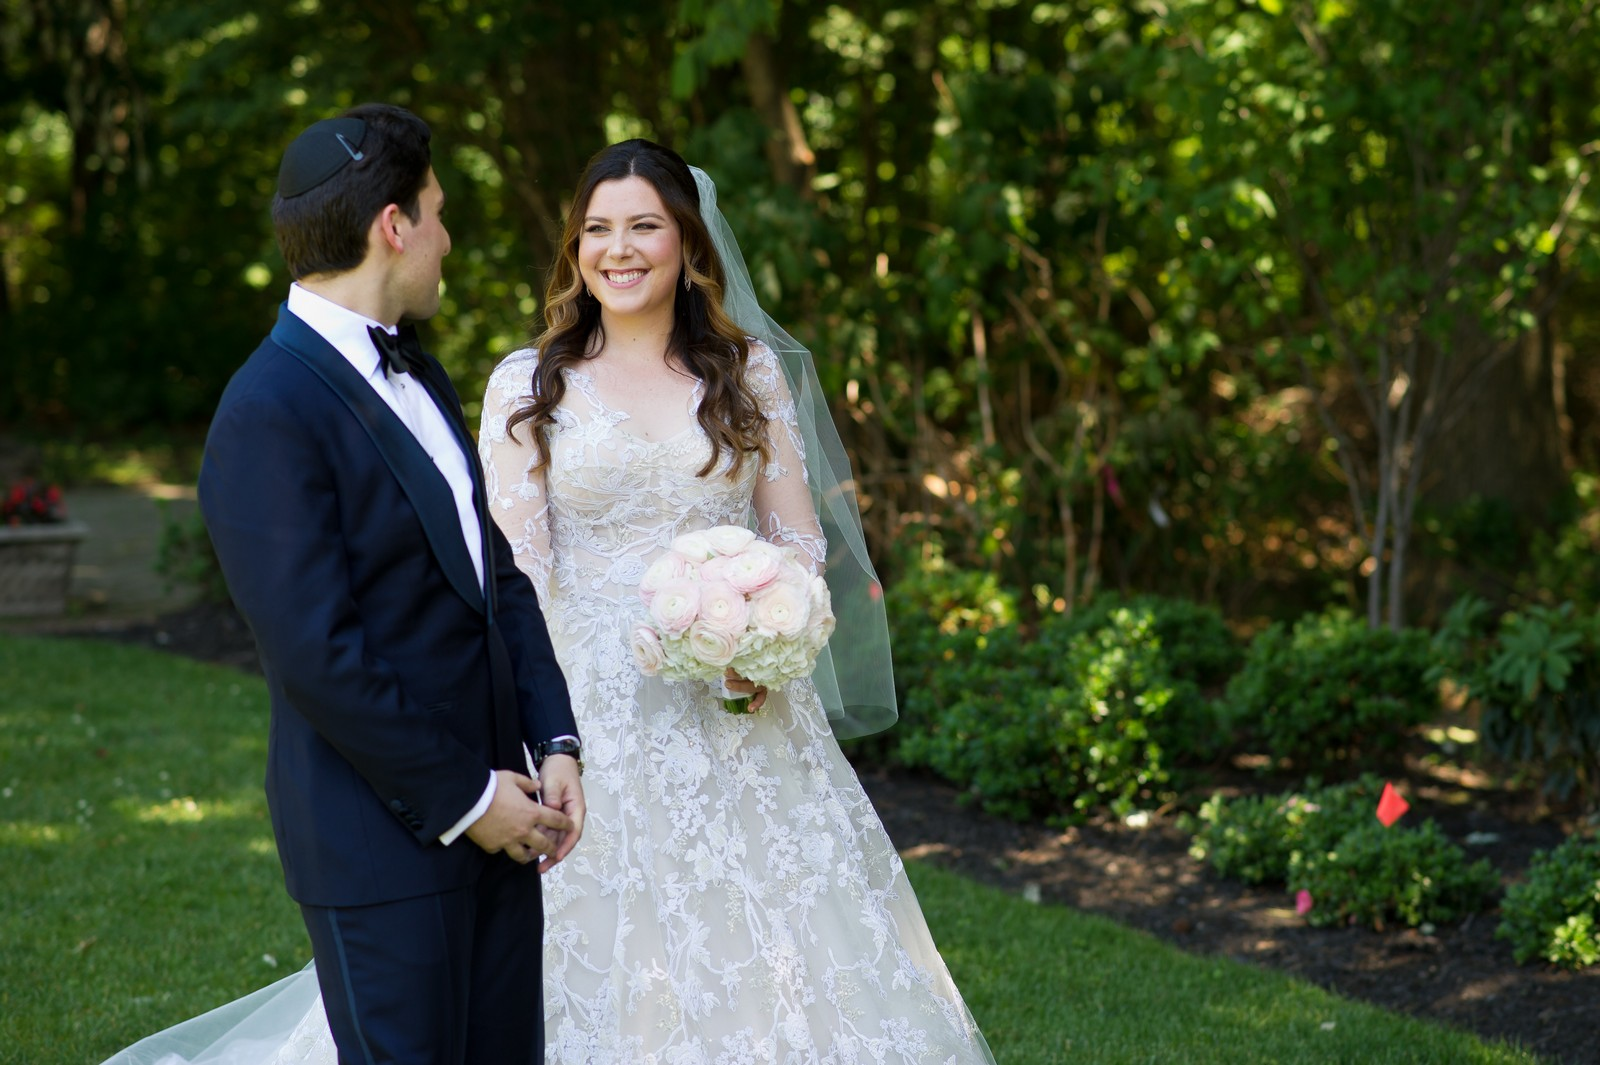 Abby and Miles' Modern Jewish Wedding at Nicotra's Ballroom, Hilton Garden Inn, Staten Island, NY, Photos by Chaim Schvarcz bride groom first look portraits